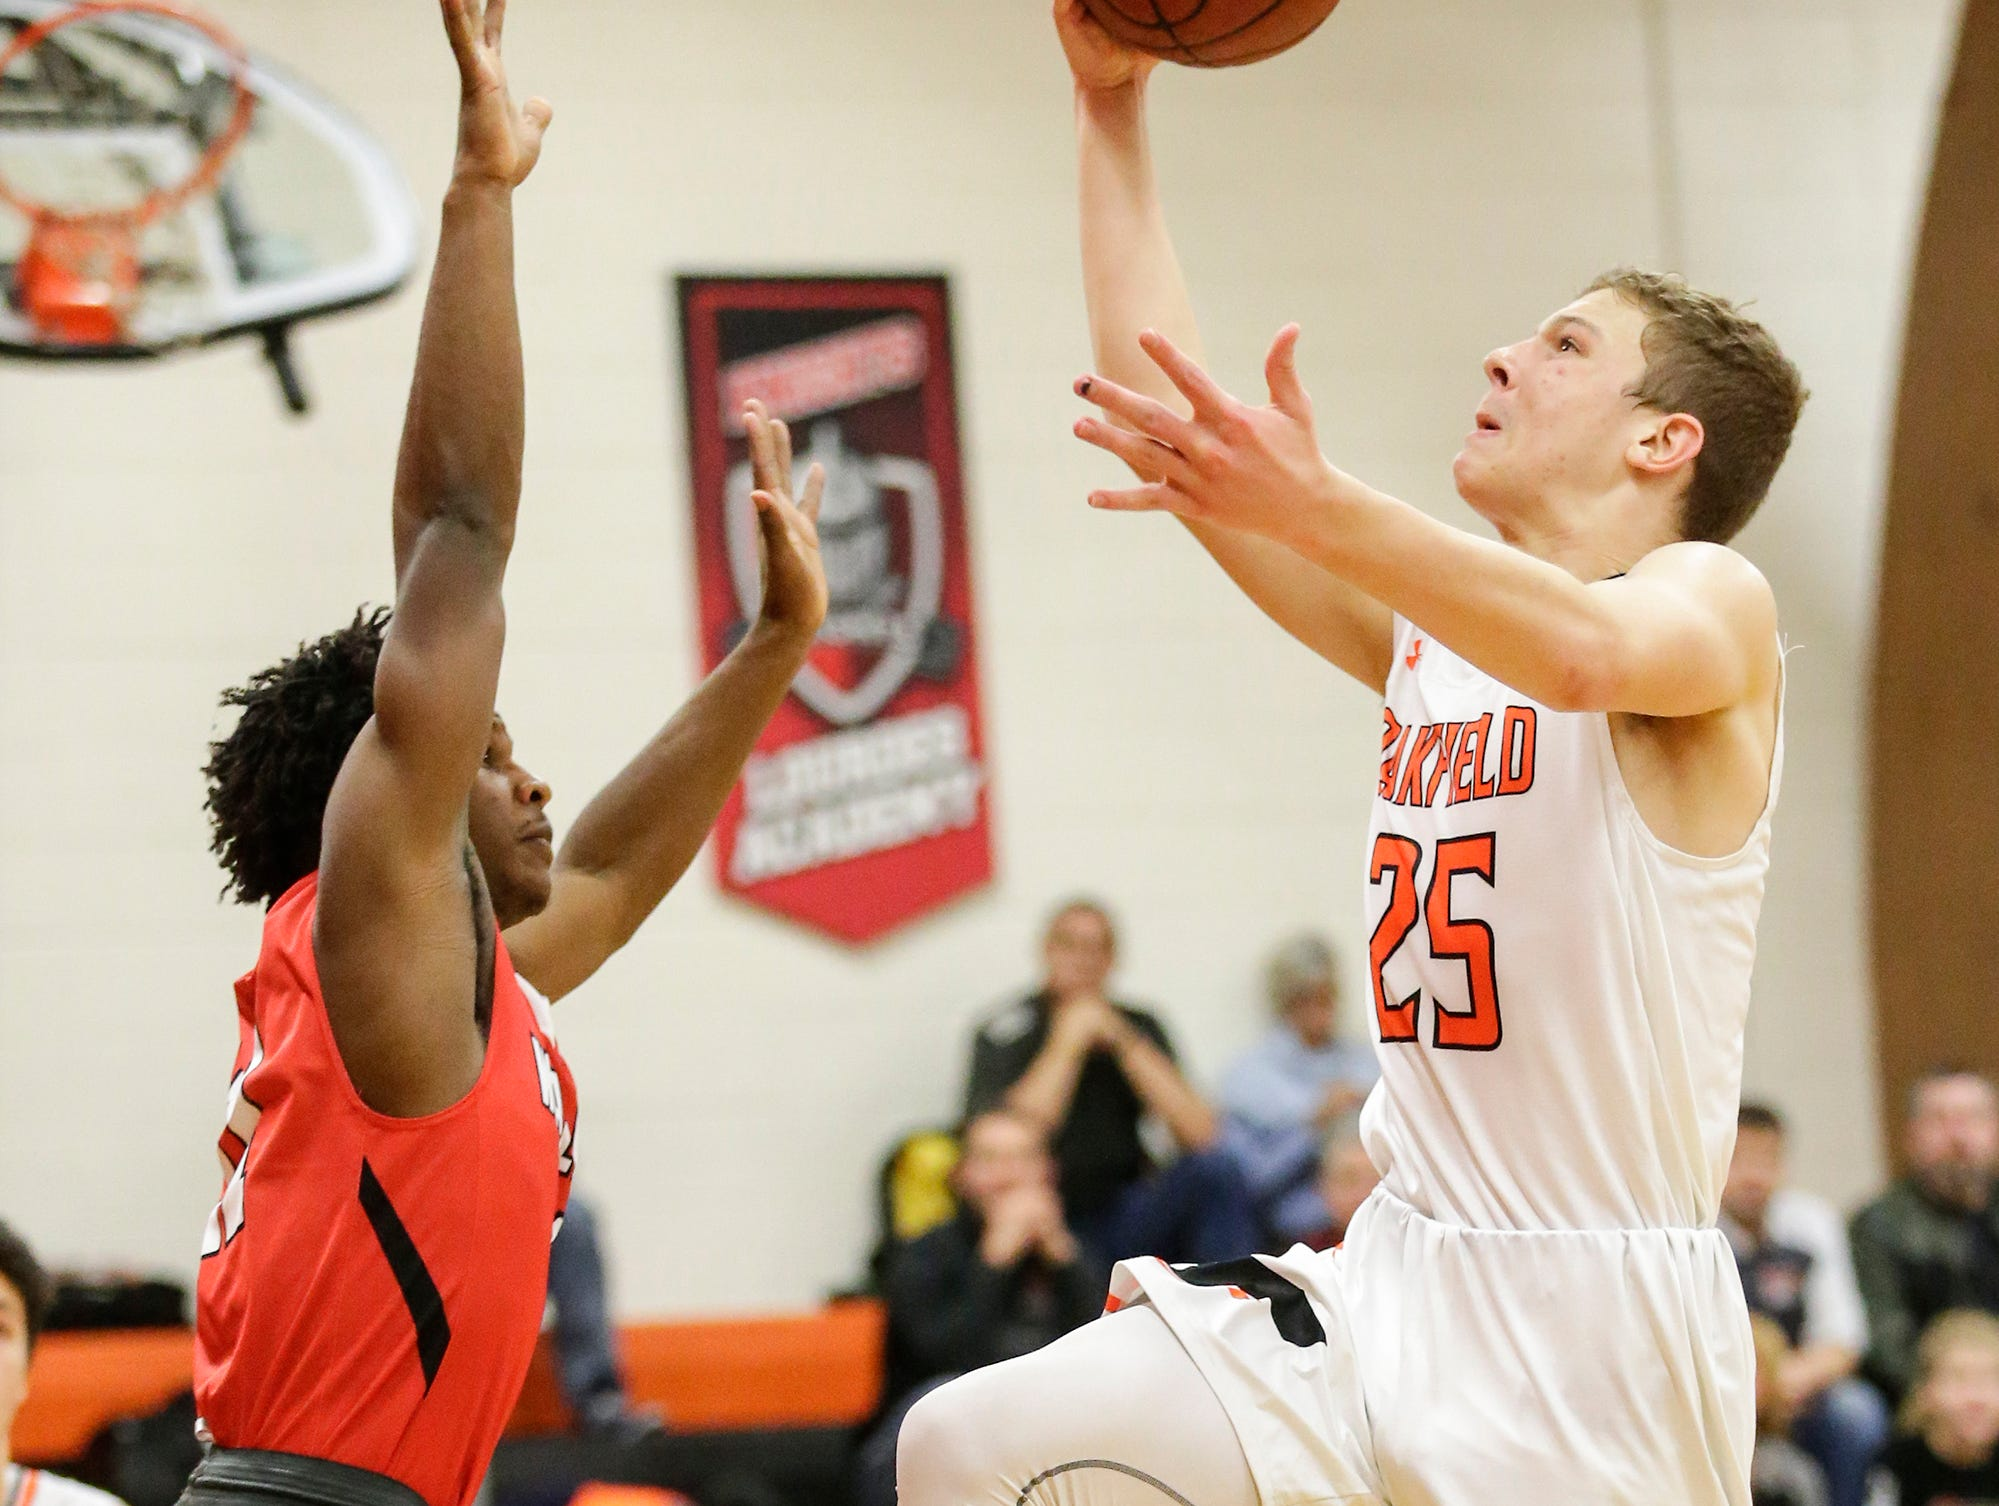 Oakfield High School boys basketball's Grant Bass goes up over Wayland Academy's Charles Eubanks January 11, 2019 during their game in Oakfield. Oakfield won the game 56-48. Doug Raflik/USA TODAY NETWORK-Wisconsin